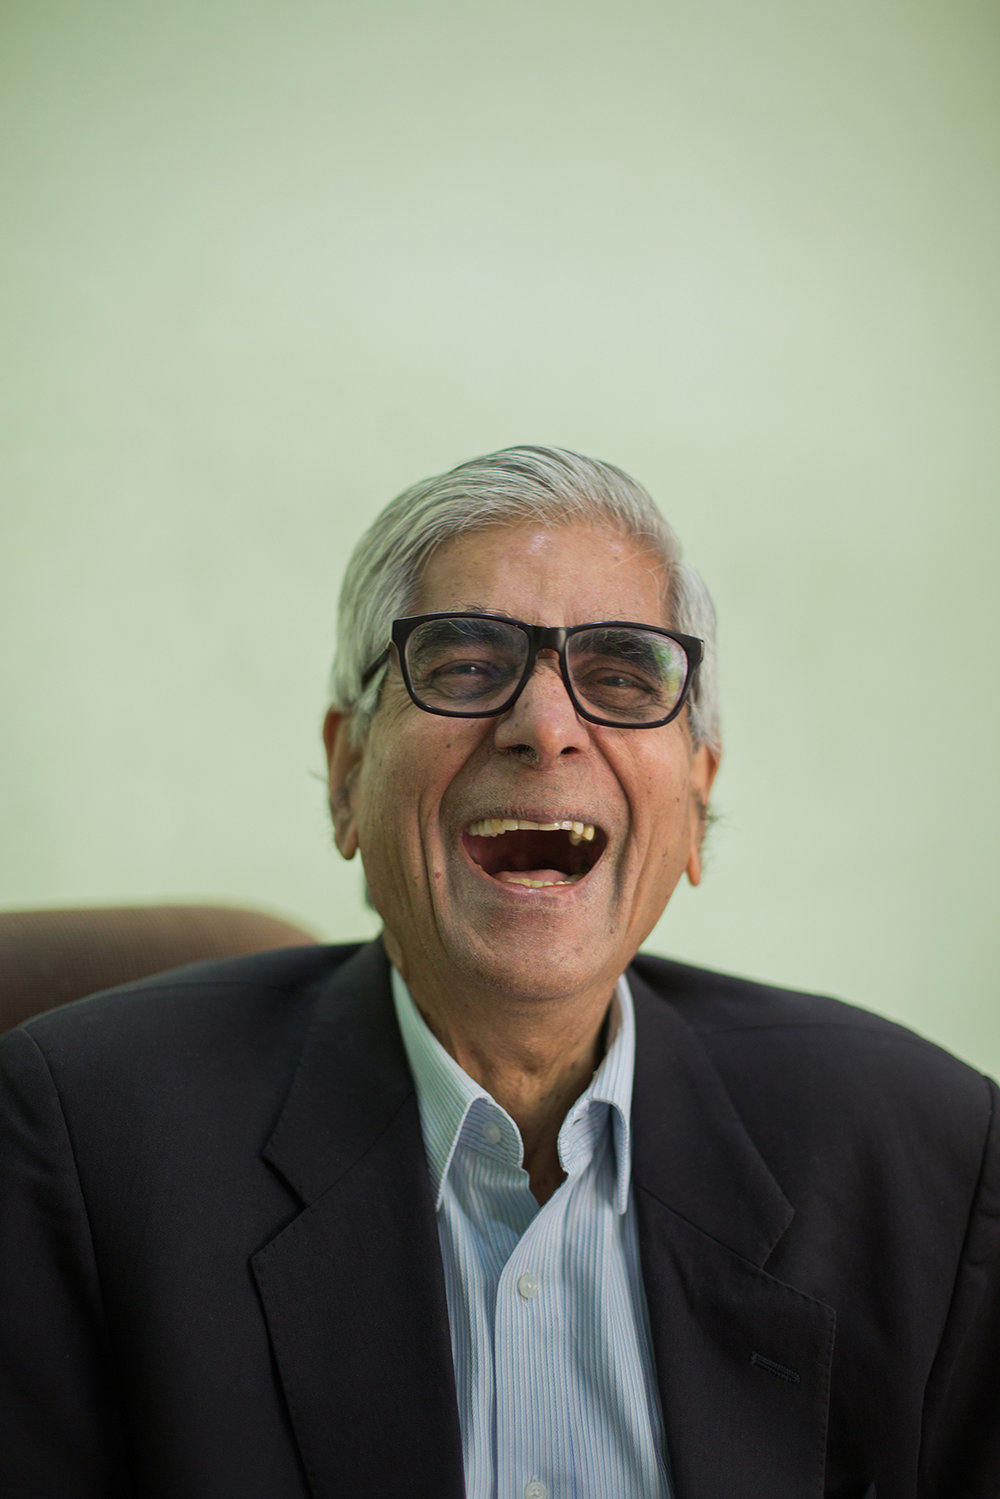 Padma Bhushan Devendra Raj Mehta, the Founder and President of BMVSS. In 2008 the President of India awarded him the Padma Bhushan, one of the three highest civilian honors. Dynamic, energetic, passionate and relentless. He not only runs the administrative operations, but also meets with patients to understand their needs and help them return to a normal life.